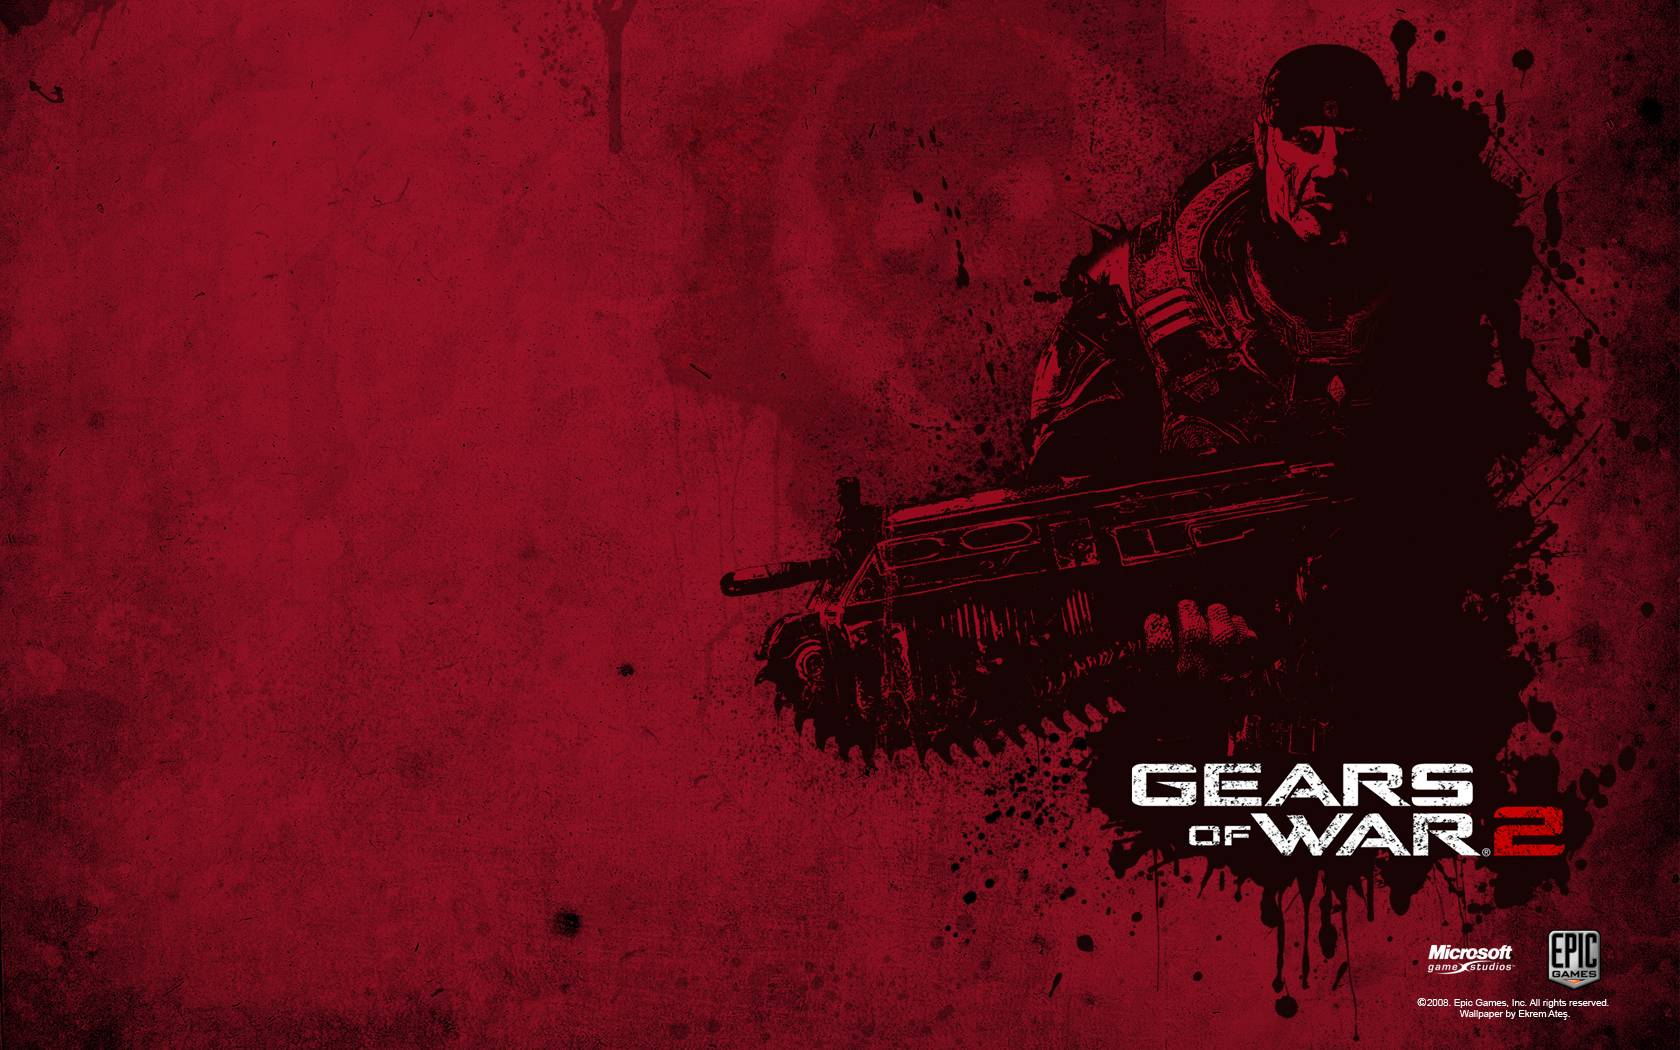 gears of war wallpapers hd - wallpaper cave